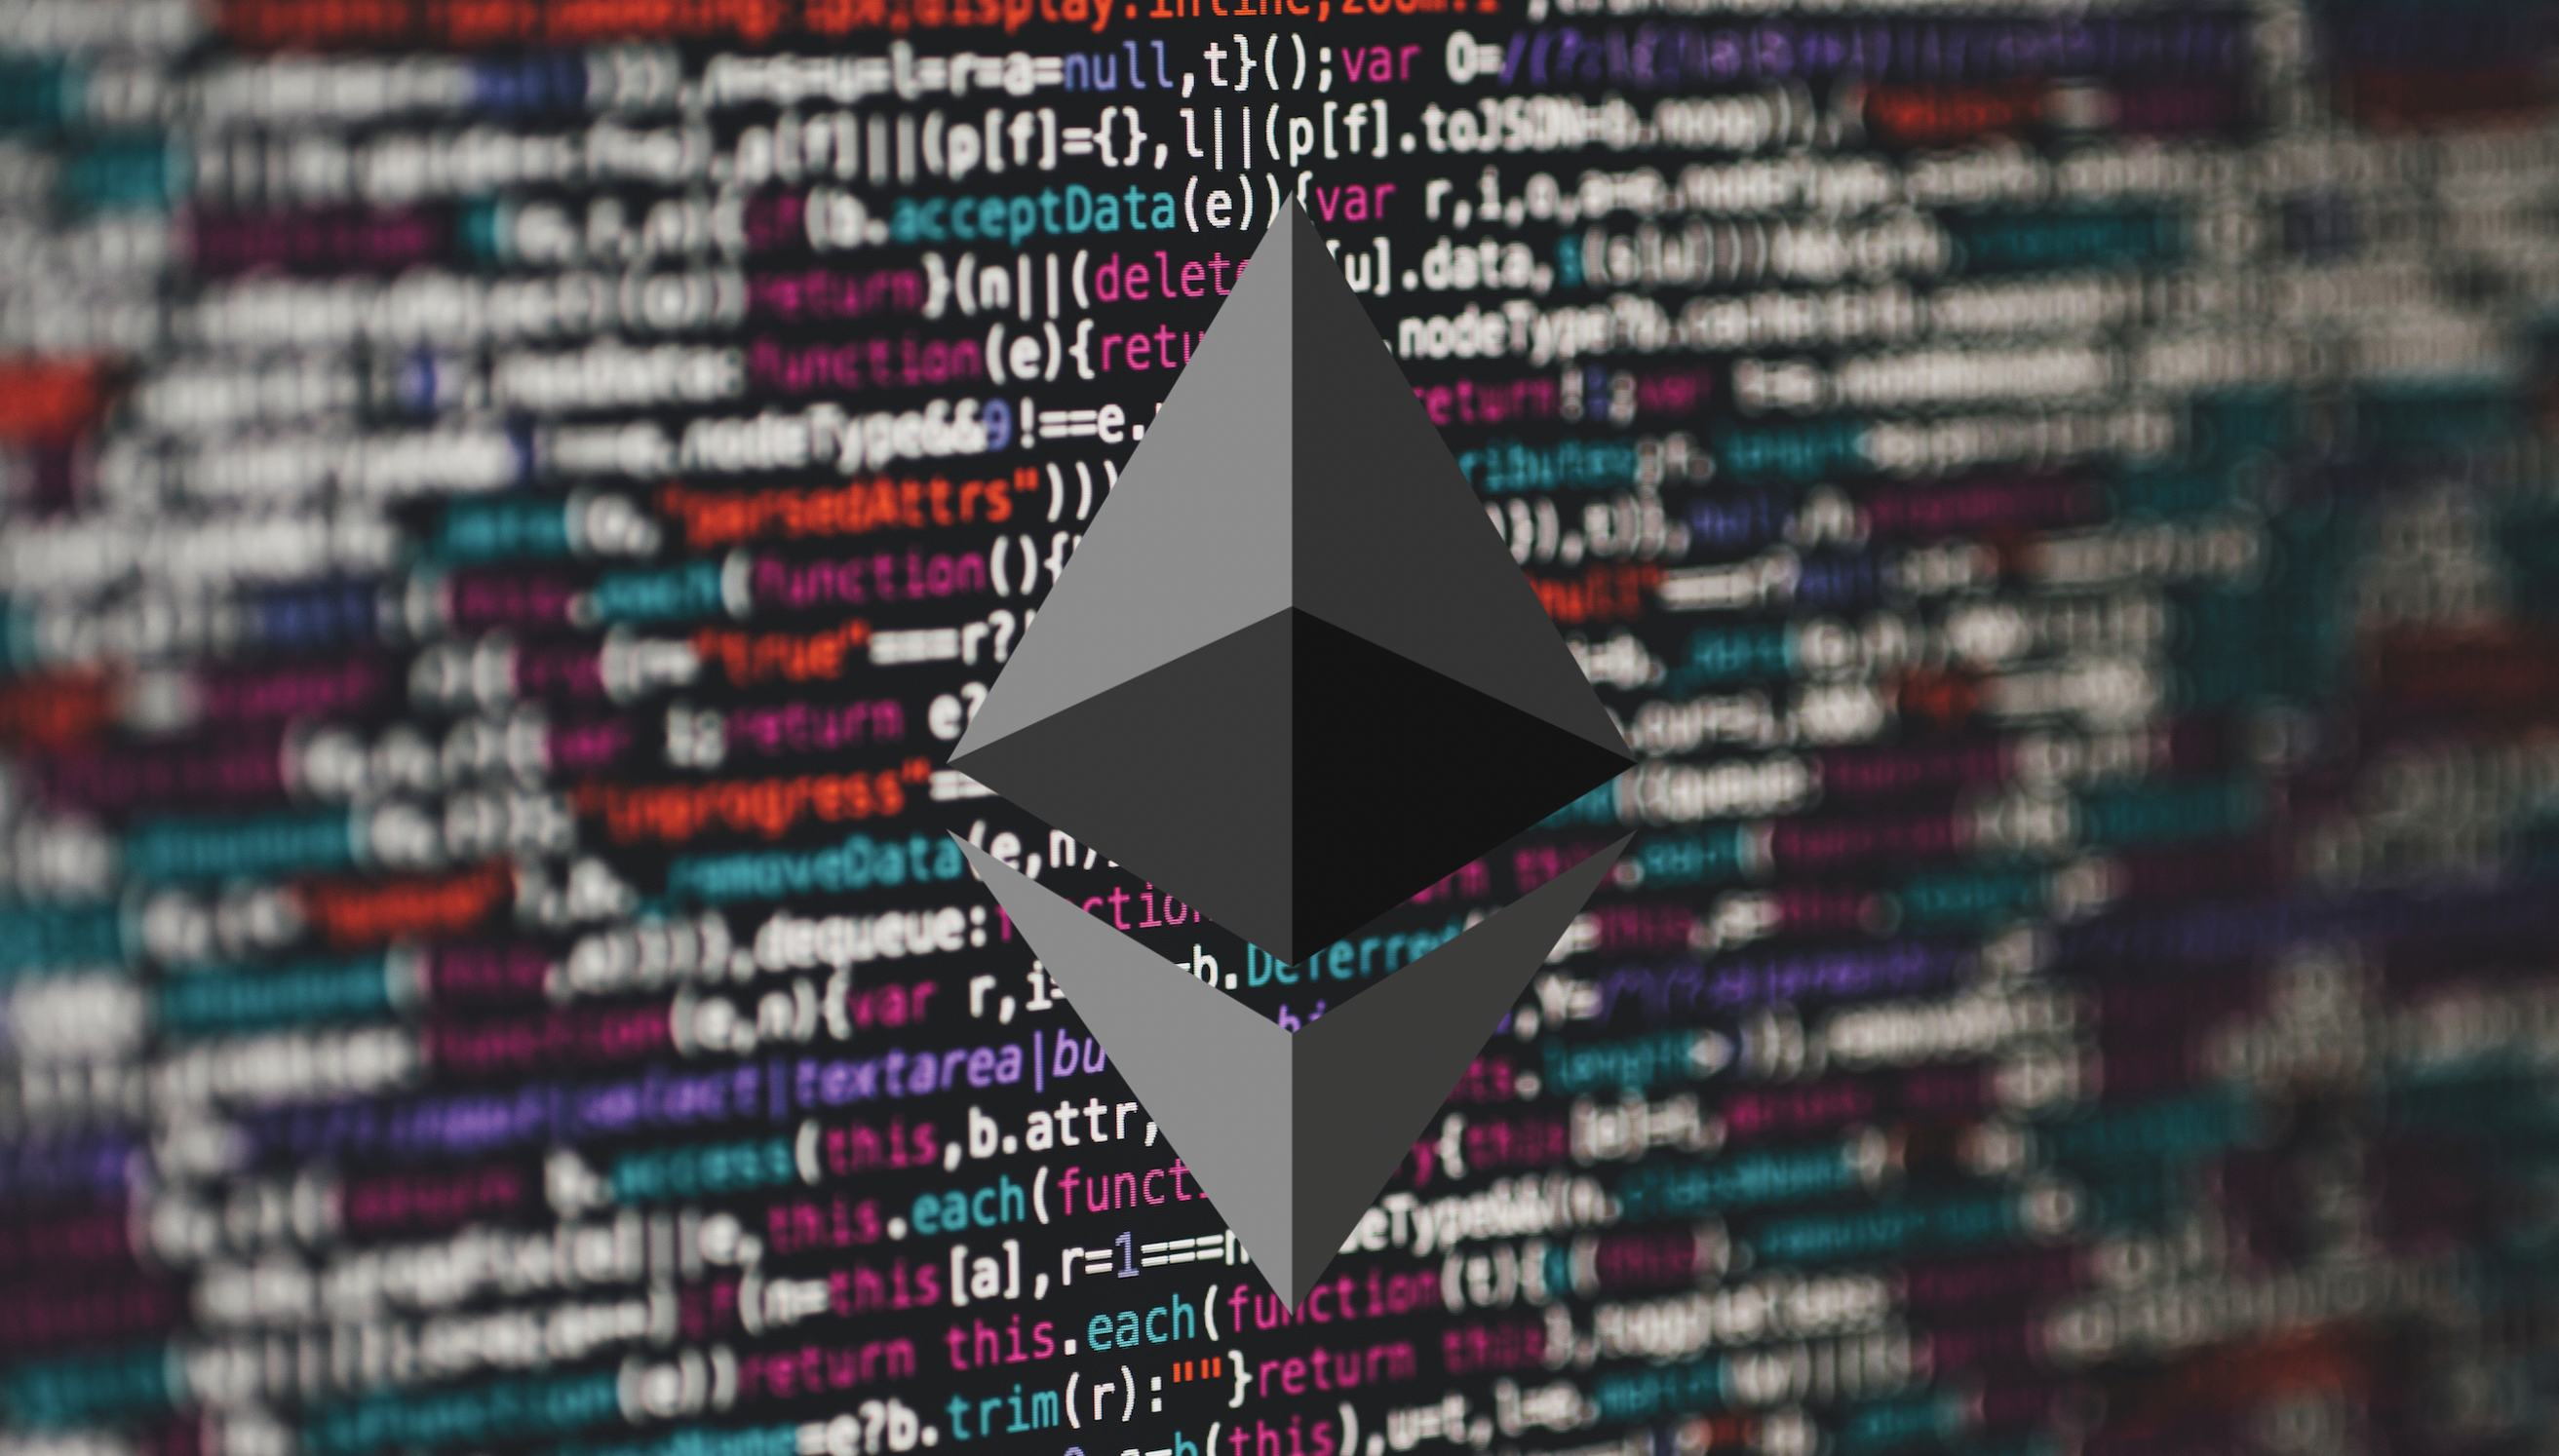 A Definitive List of Ethereum Developer Tools - ConsenSys Media